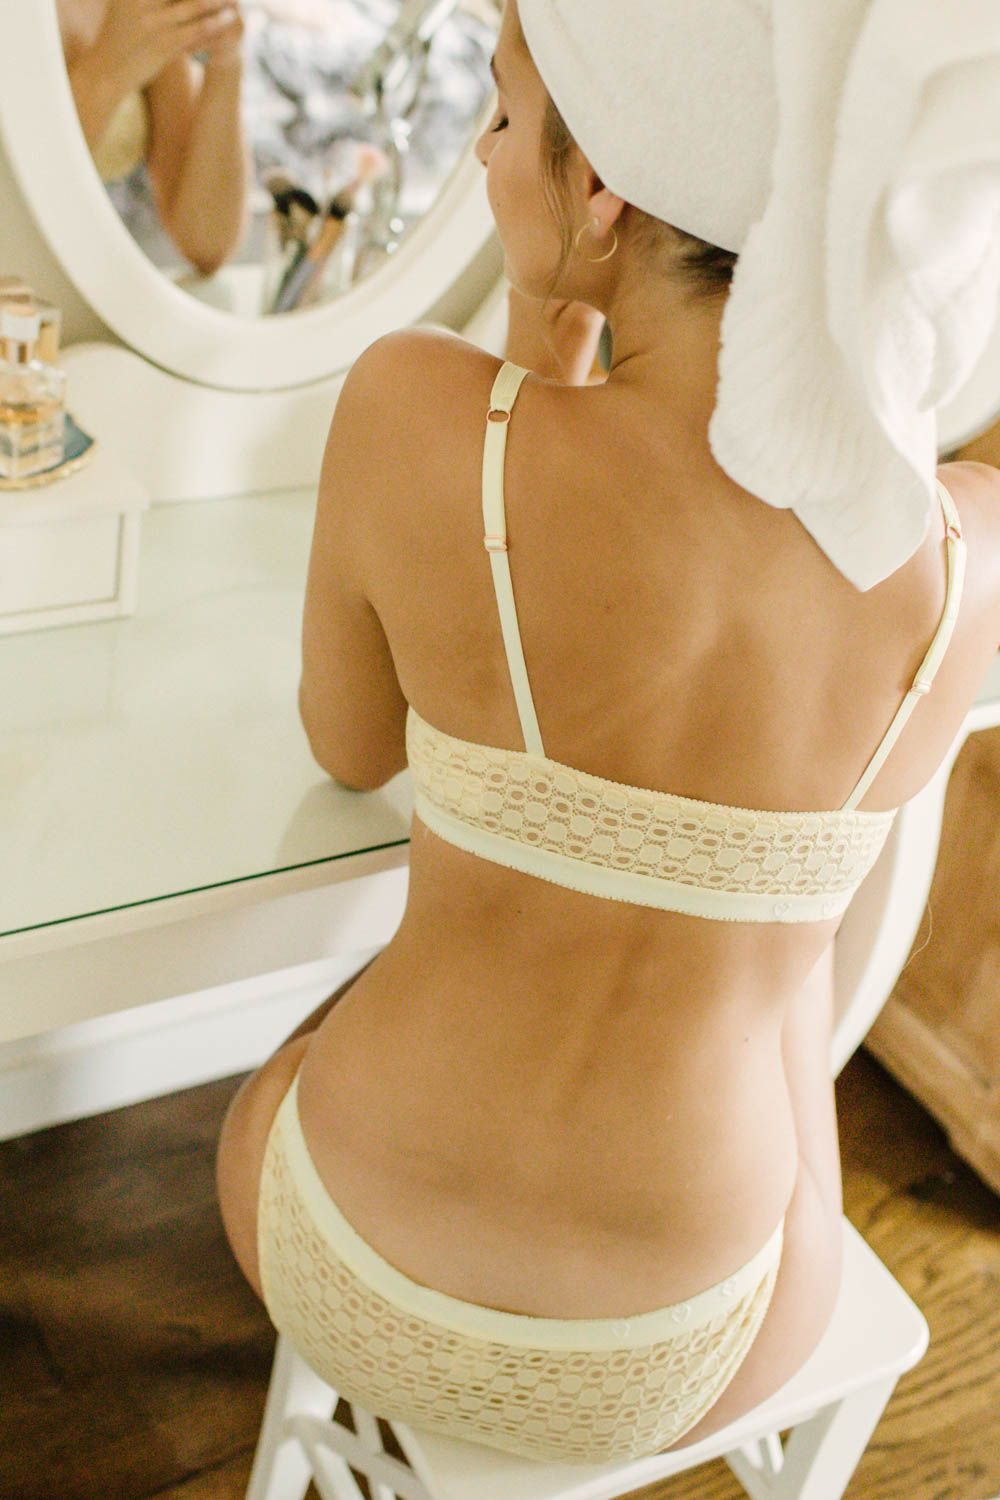 d7299f9a8 What bralette am I wearing day in and day out  The Barrett bralette by Madalynne  Intimates + Lingerie Affordable